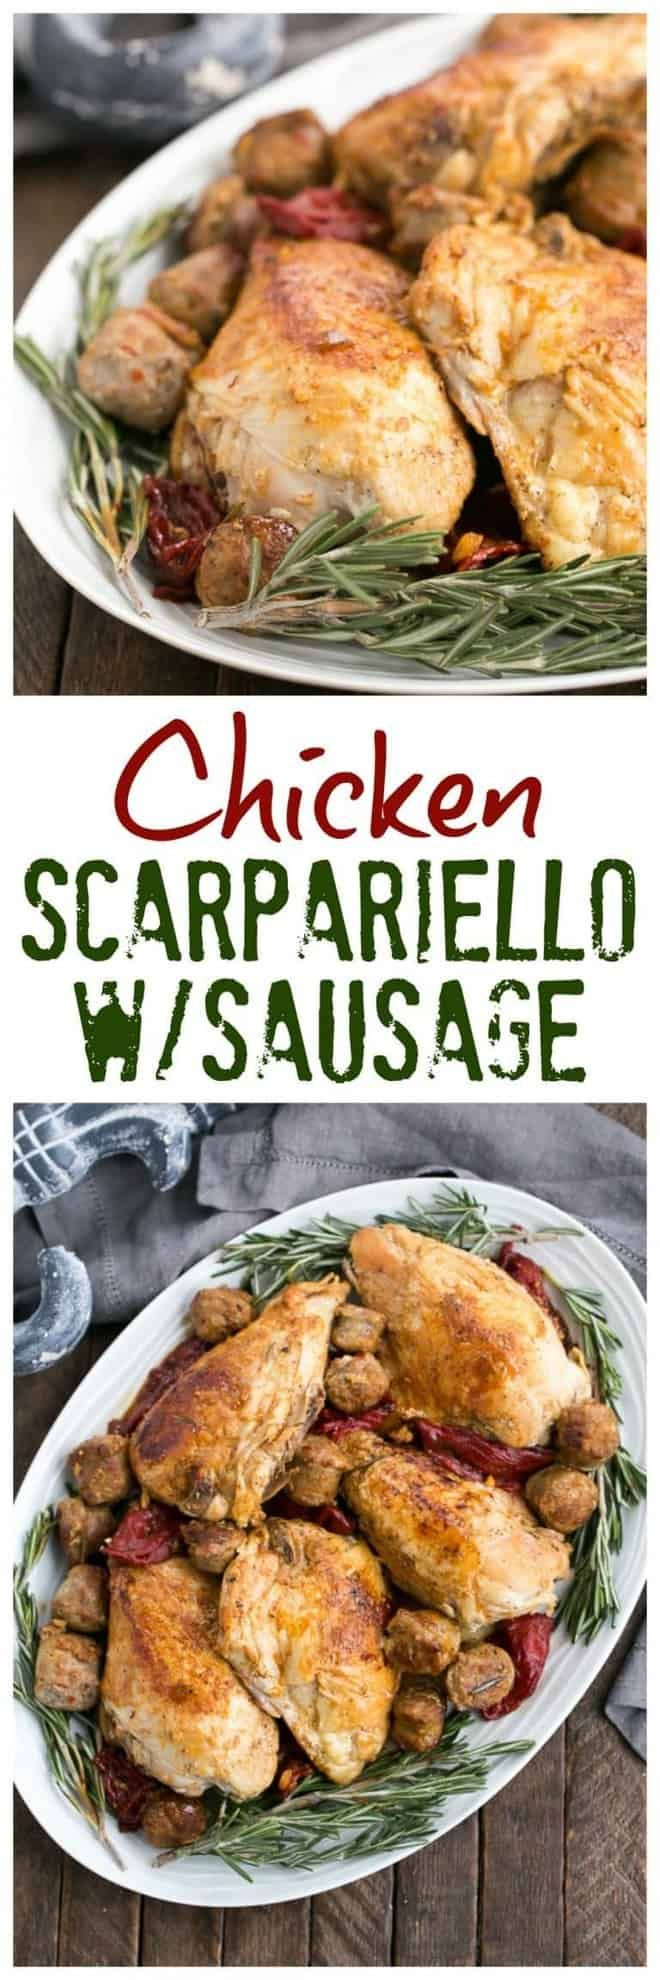 Chicken Scarpariello with Sausage